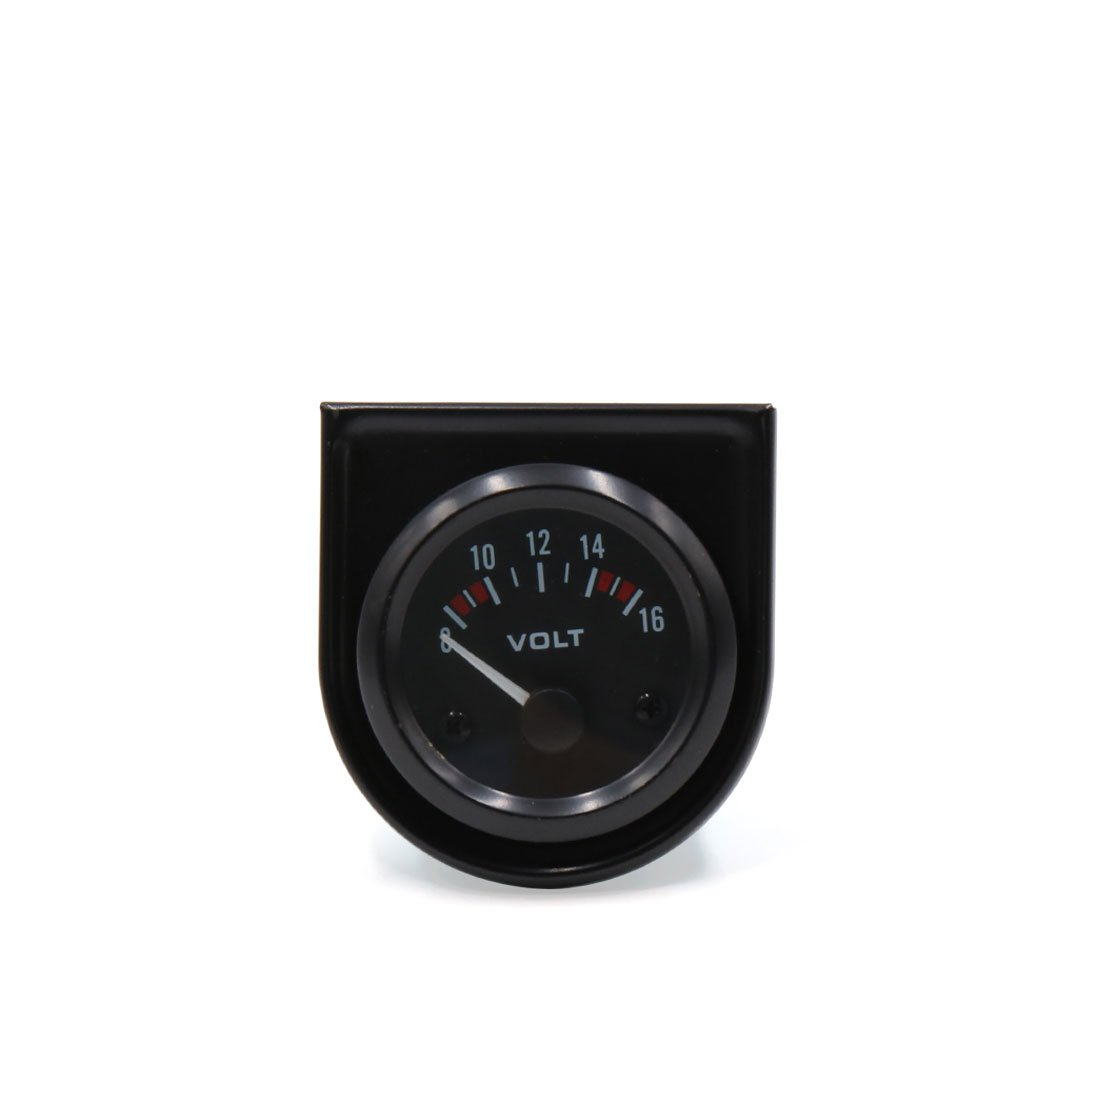 uxcell a16121600ux0601 Voltage Pointer Meter Unknown